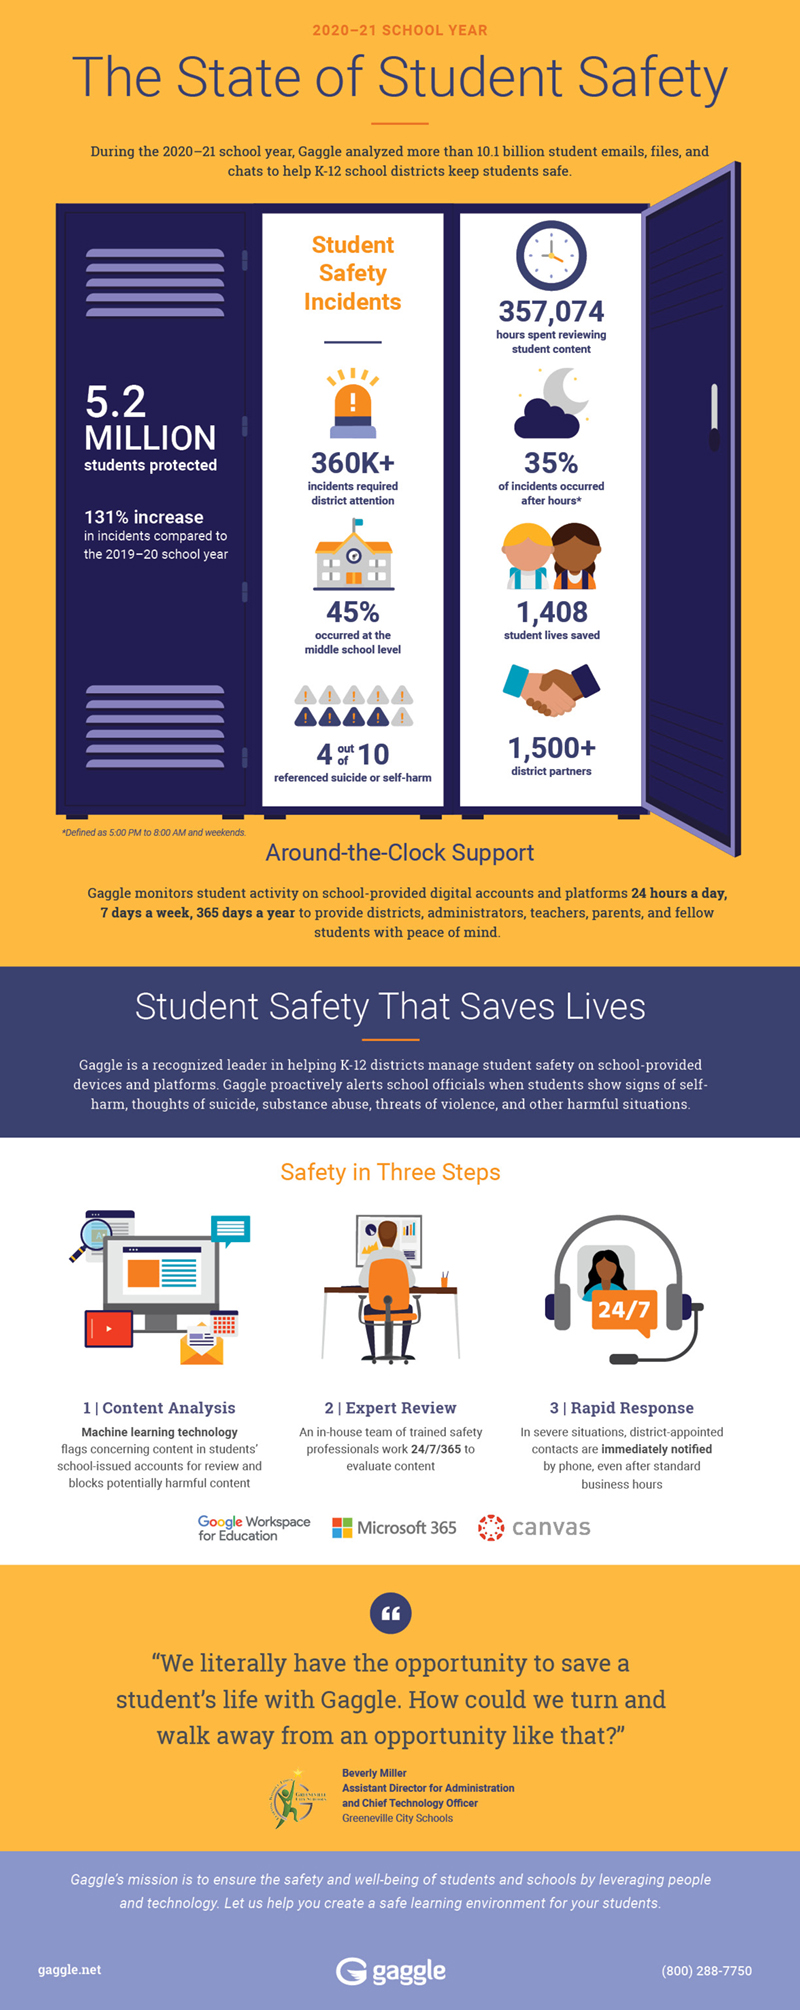 The State of Student Safety